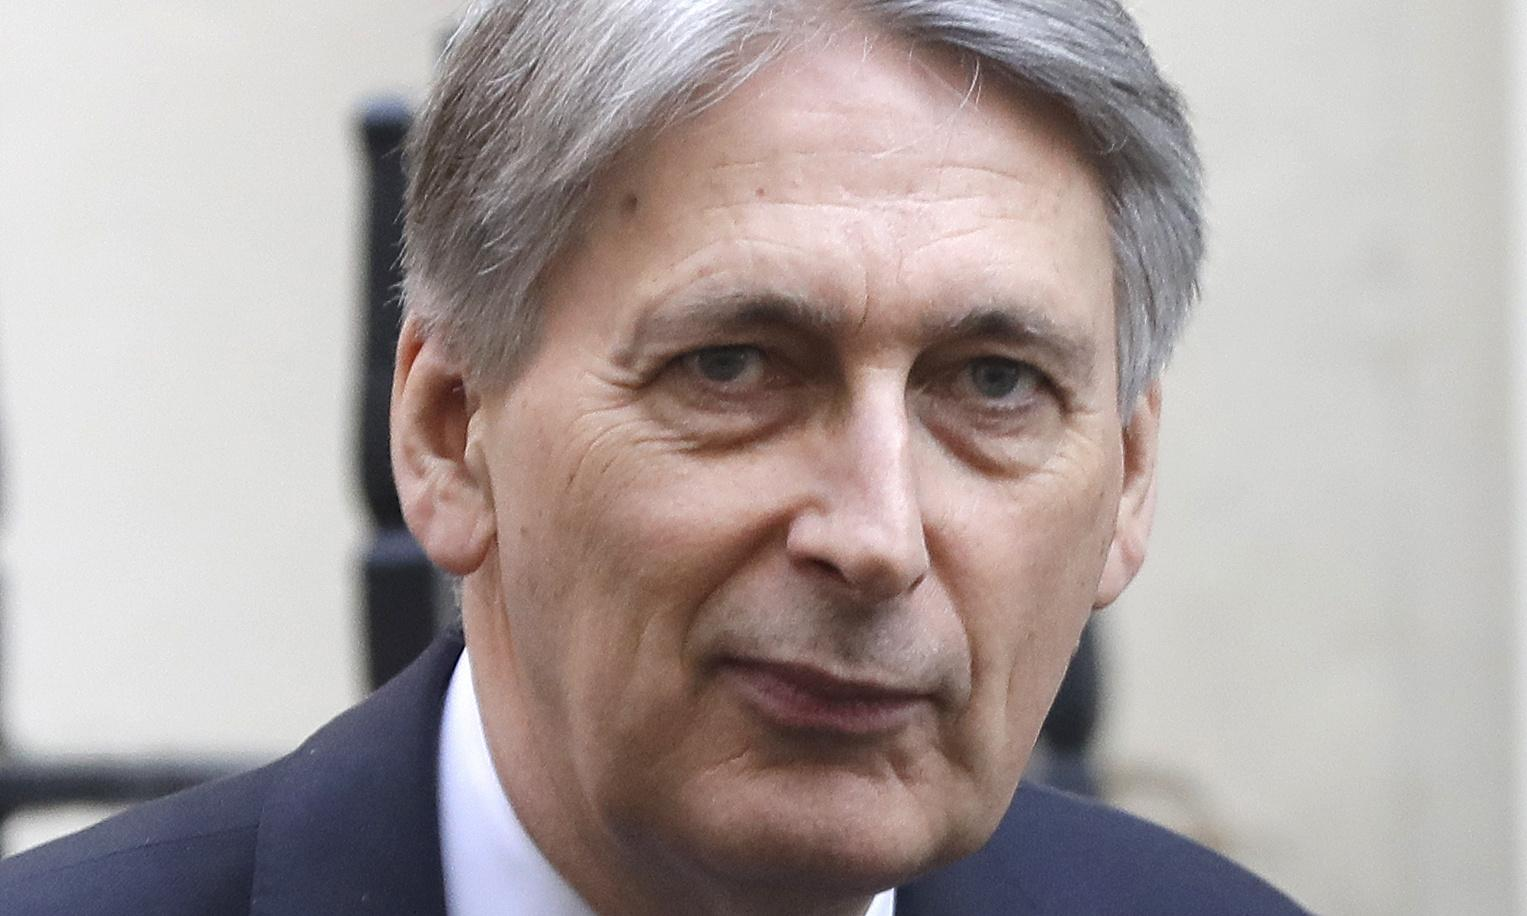 Philip Hammond backed by senior local Tory over Brexit stance